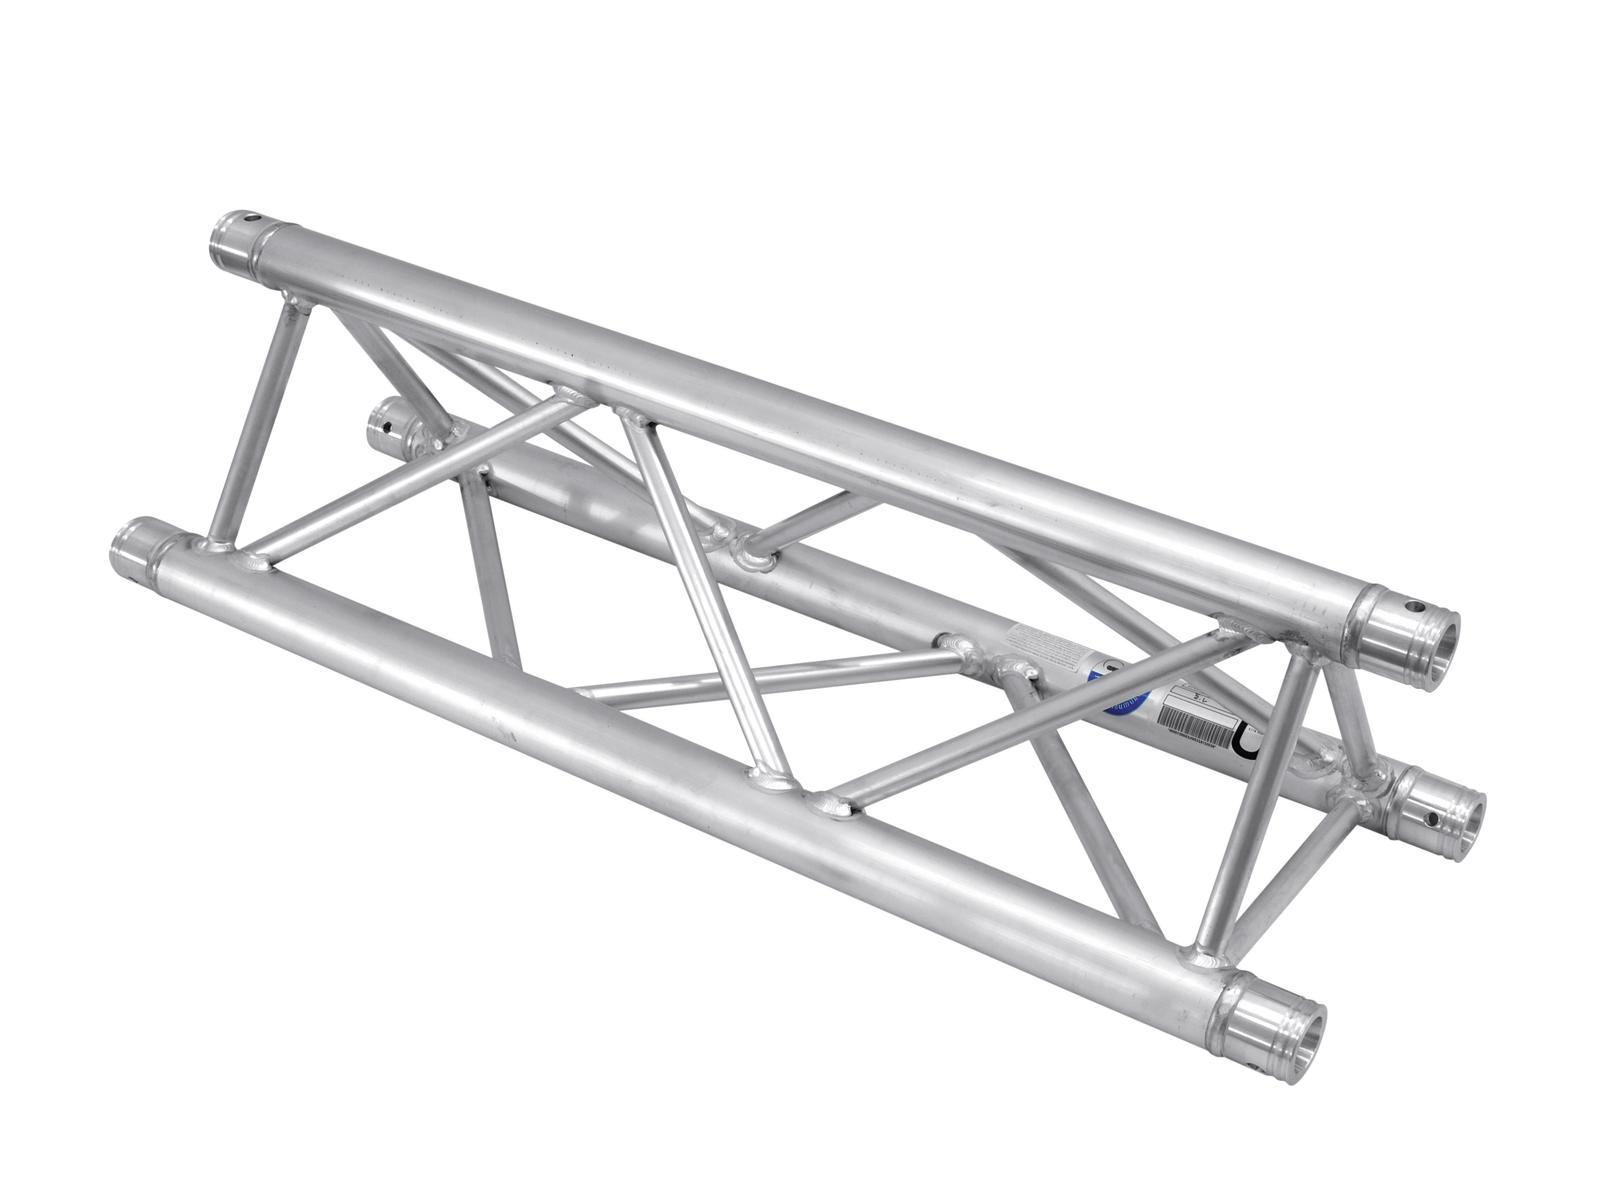 ALUTRUSS TRILOCK E-GL33 1500 a